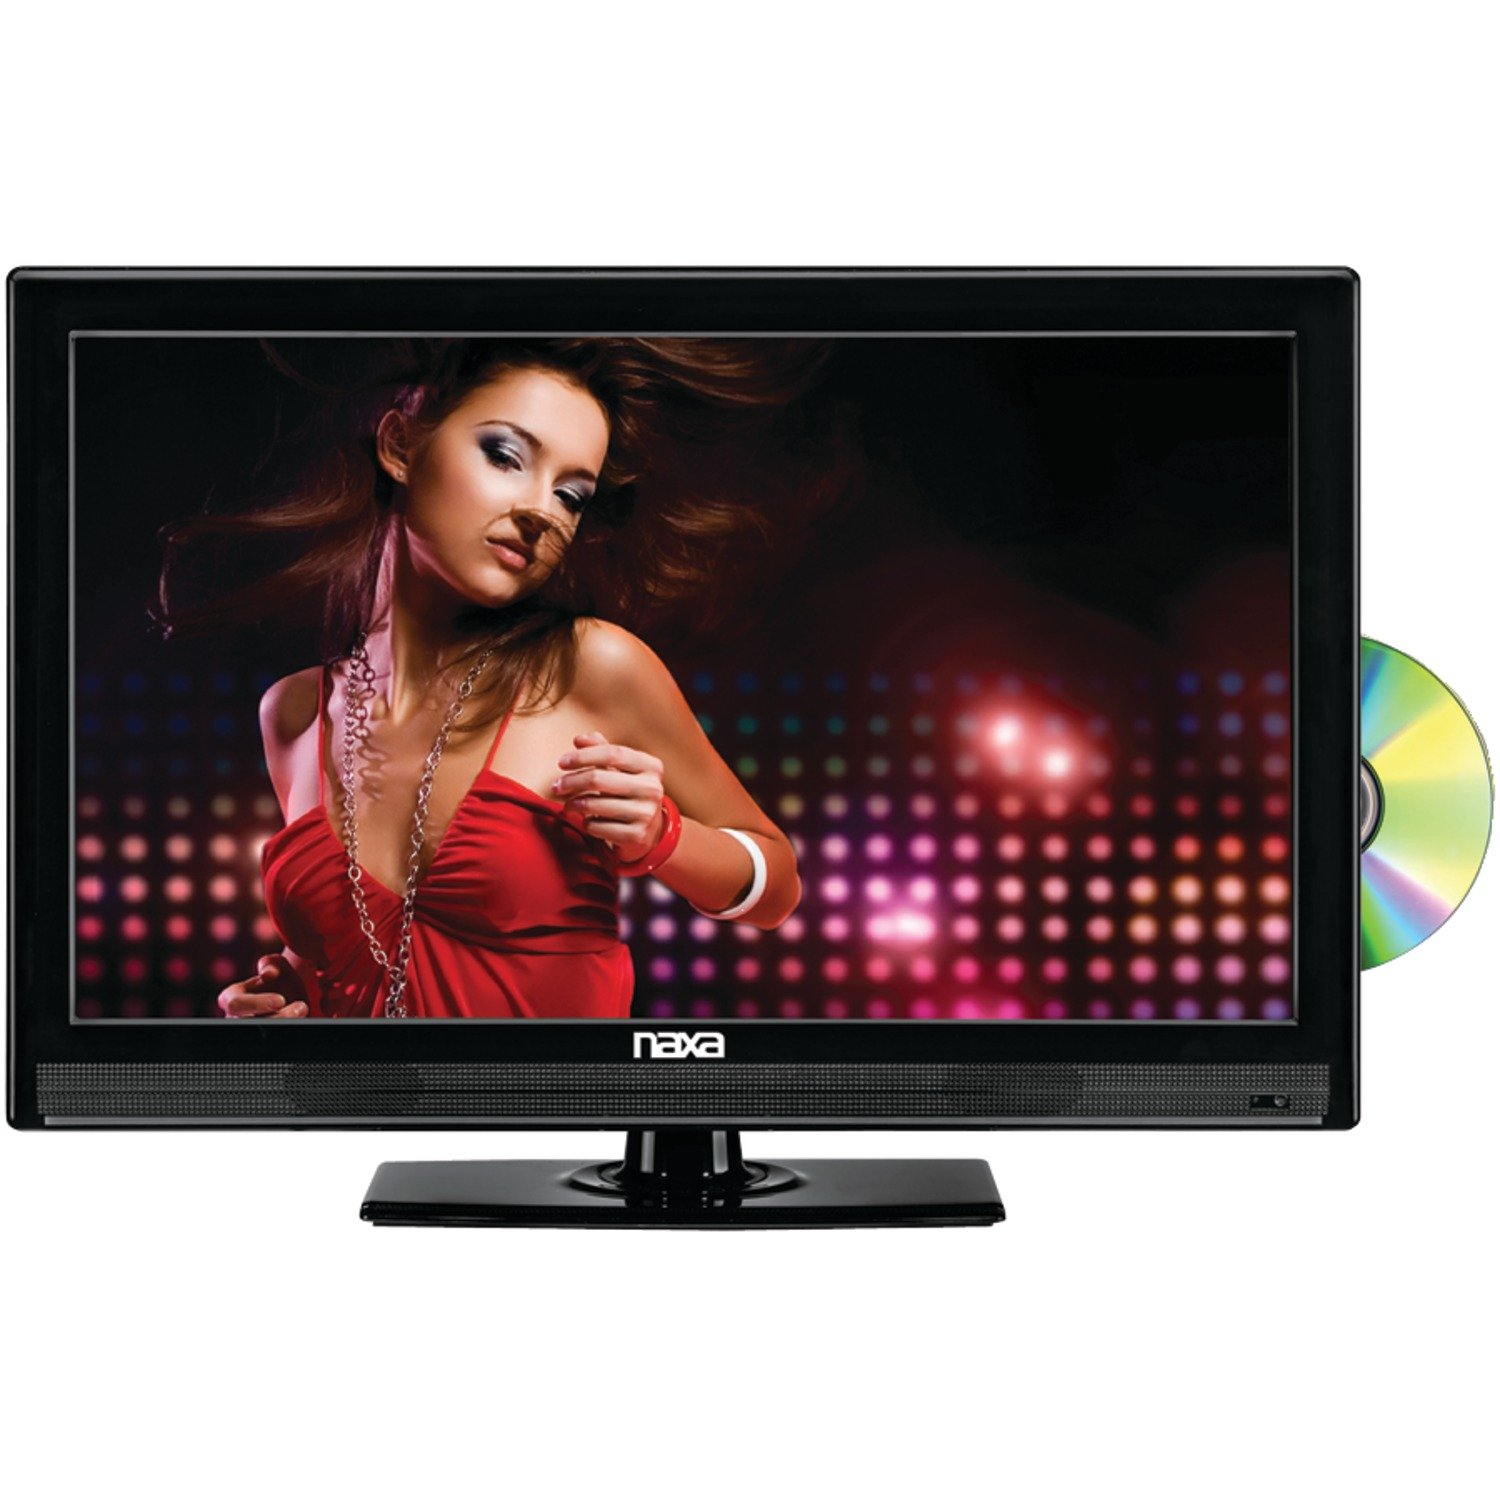 NAXA NTD-2252 22-Inch Widescreen Full 1080p HD LED TV with Built-in Digital TV Tuner and USB/SD Inputs and DVD Player